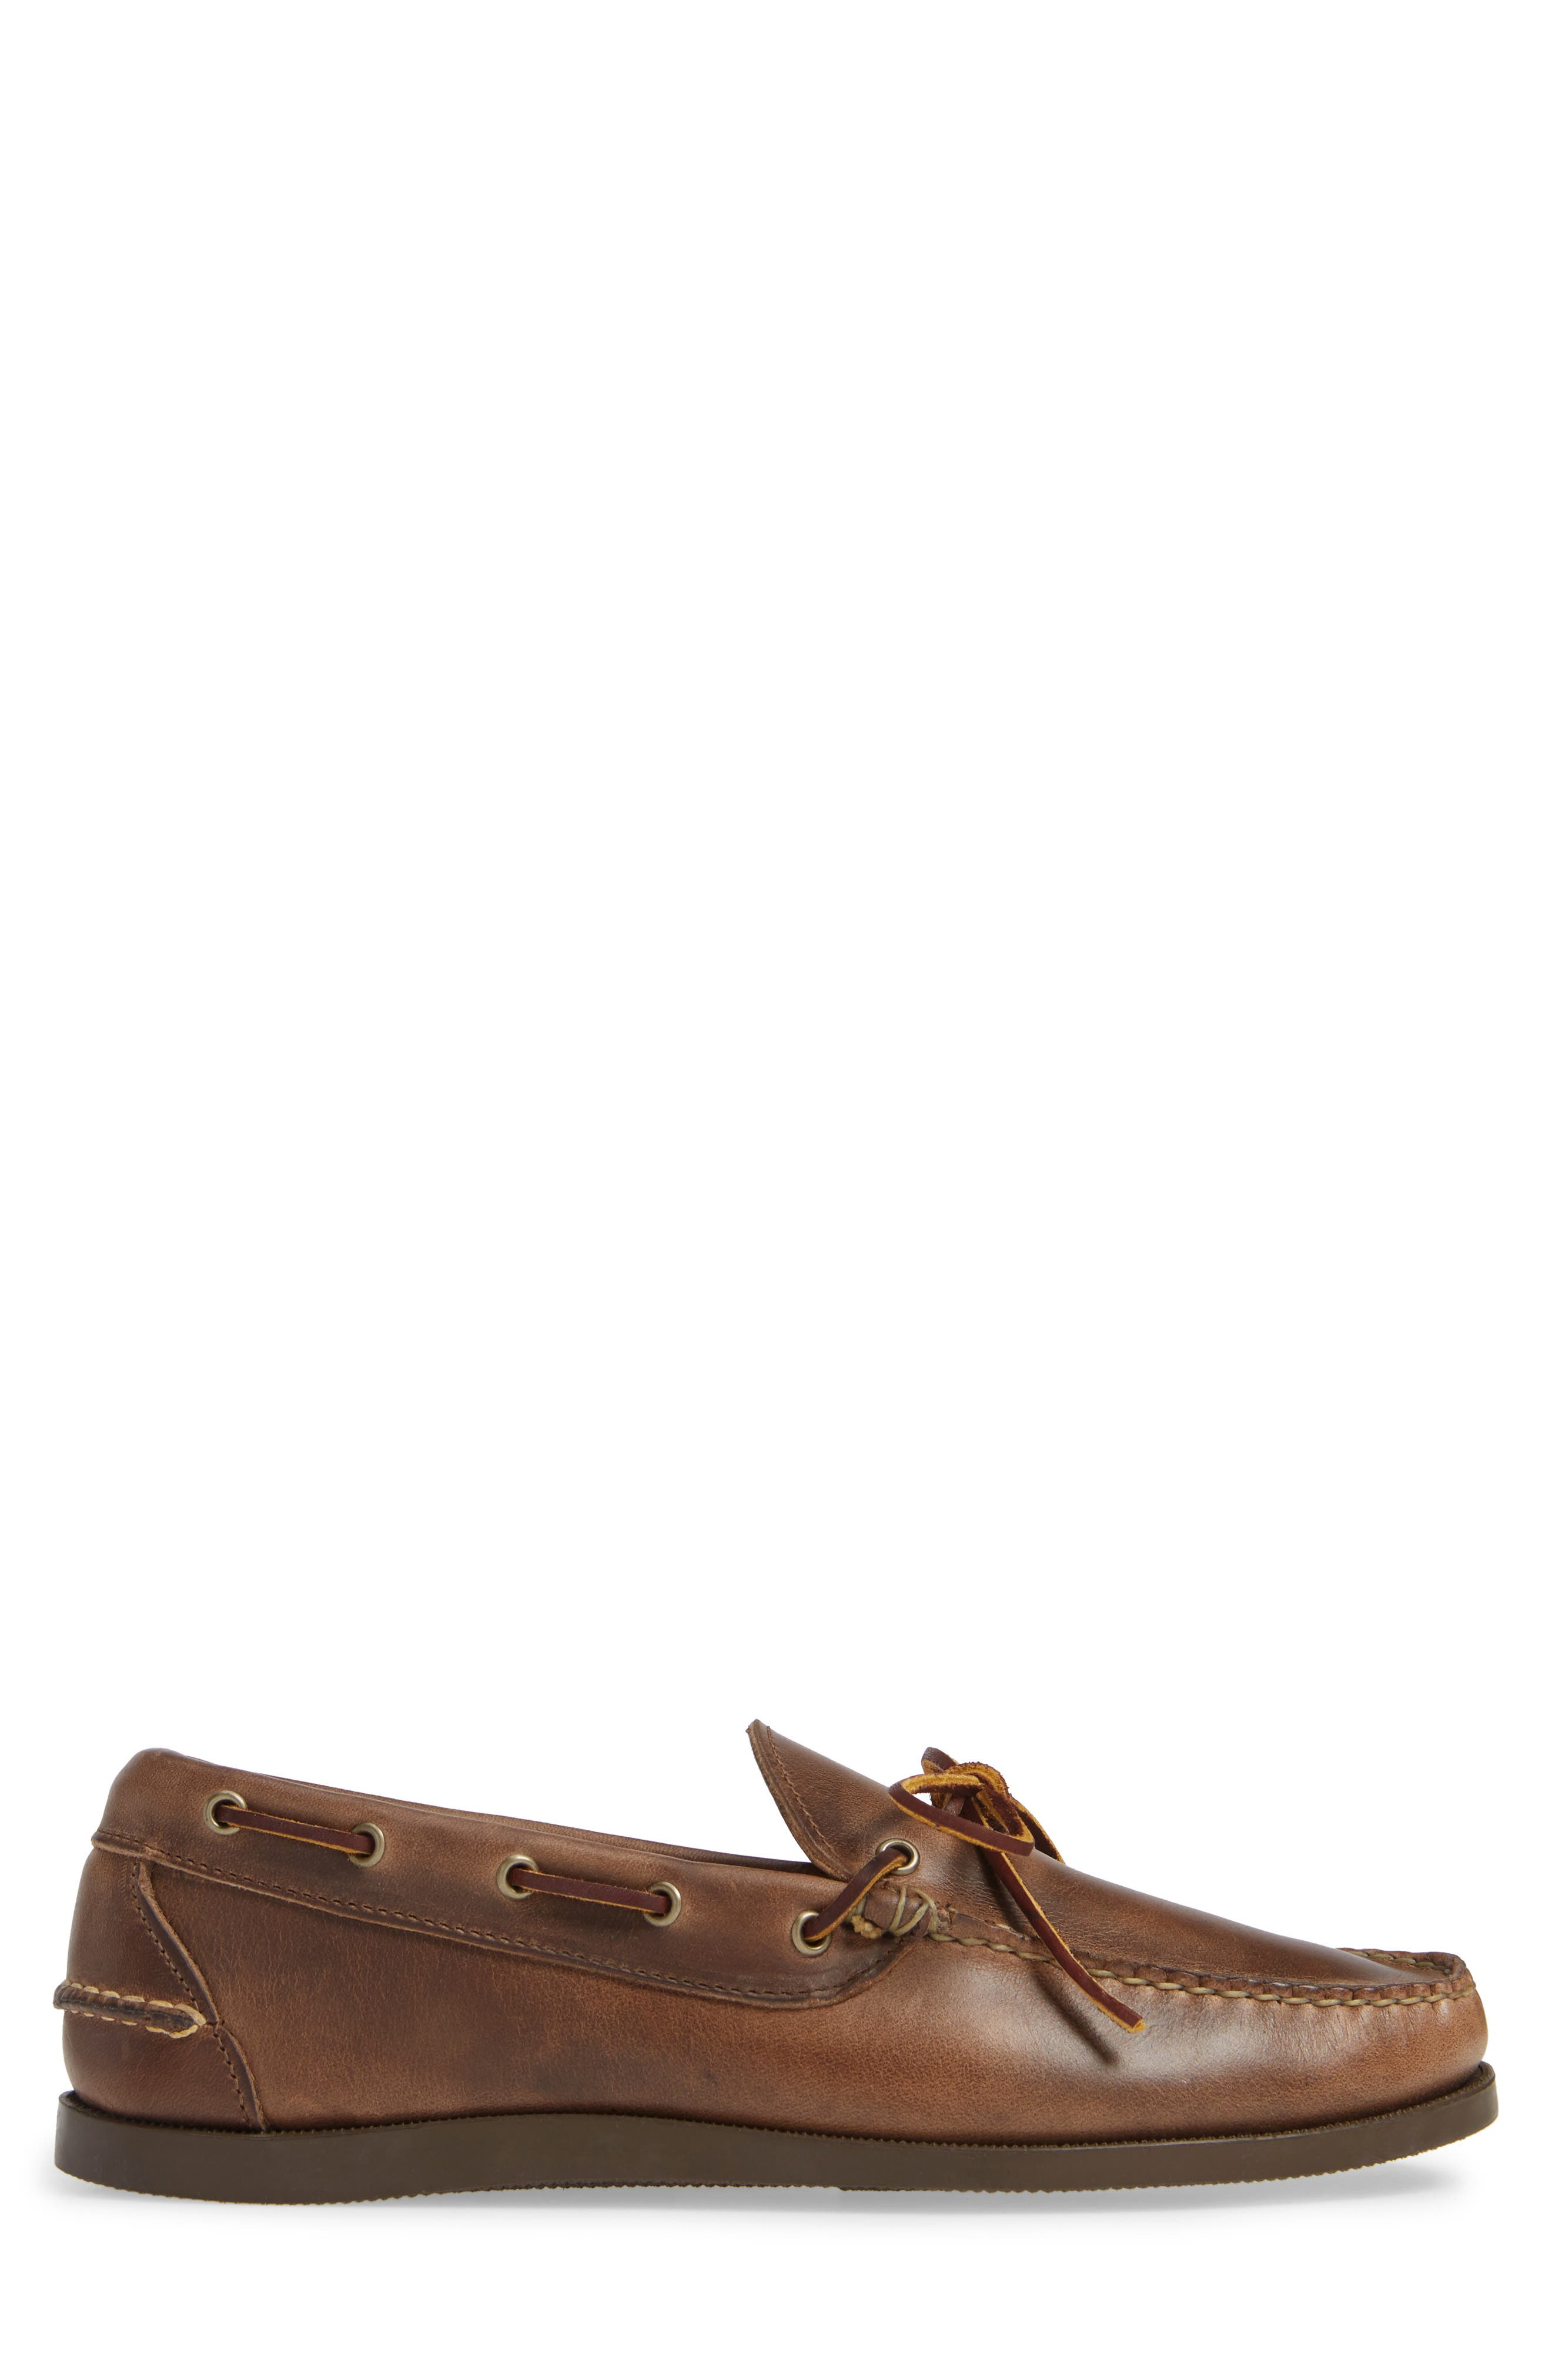 Camp Moccasin,                             Alternate thumbnail 3, color,                             NATURAL LEATHER